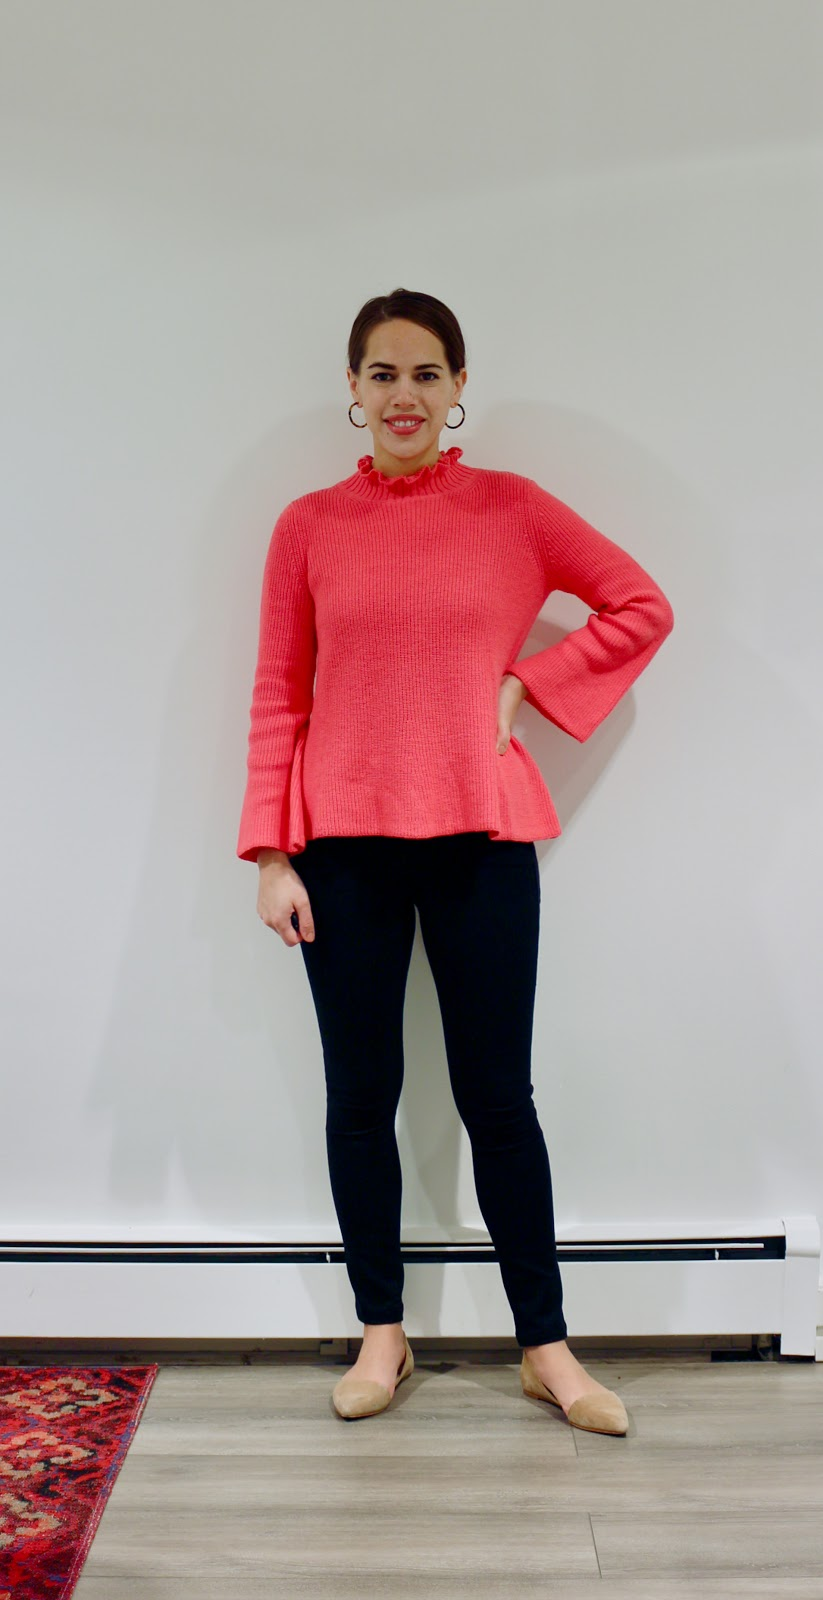 Jules in Flats - Pink Ruffle Mock Neck Swing Sweater (Business Casual Fall Workwear on a Budget)